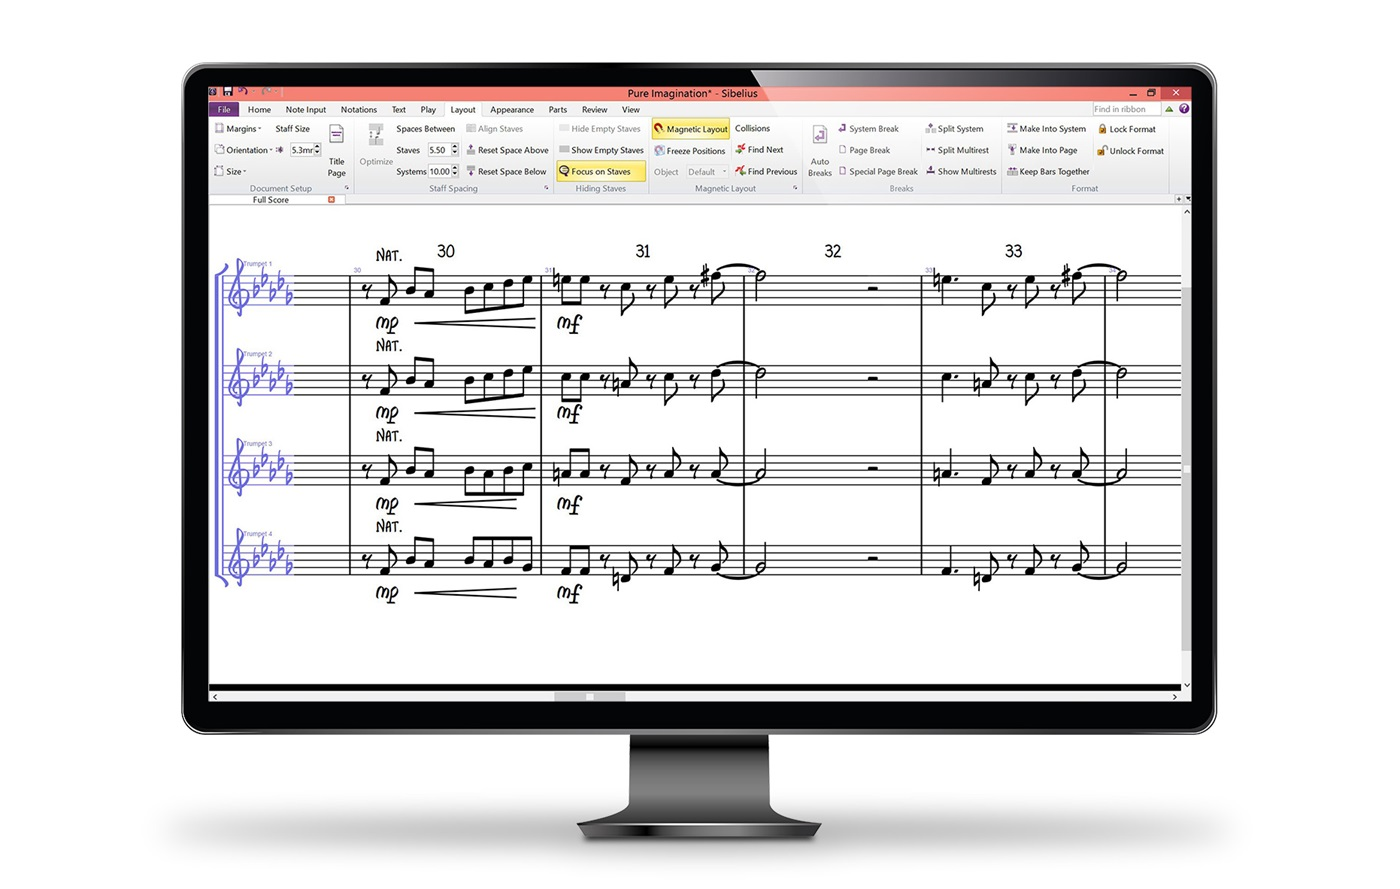 Sibelius_Overview_Main